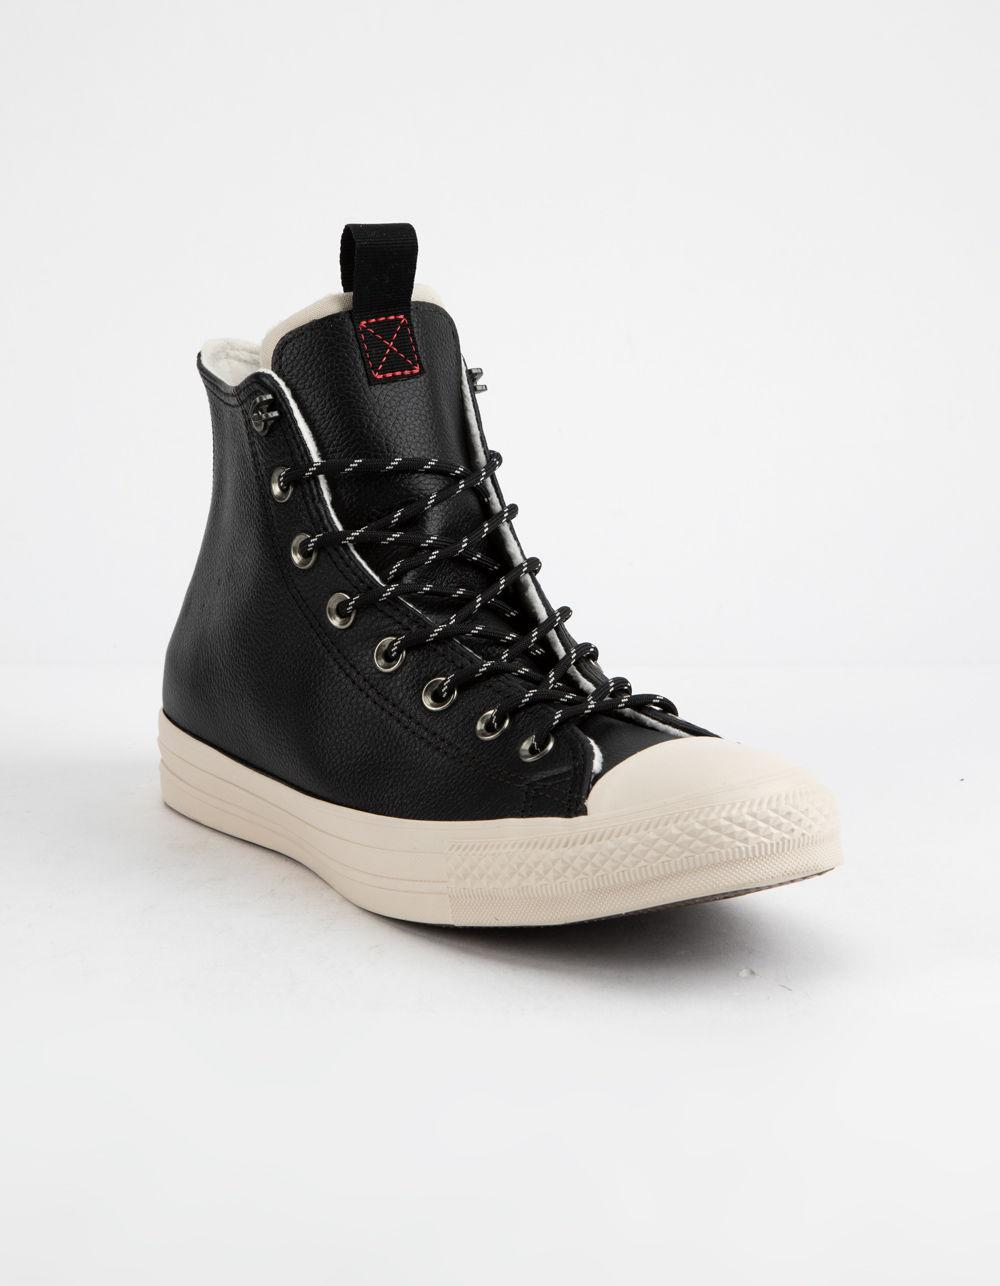 6184eba1b364 Lyst - Converse Chuck Taylor All Star Leather Black   Driftwood High Top  Shoes in Black for Men